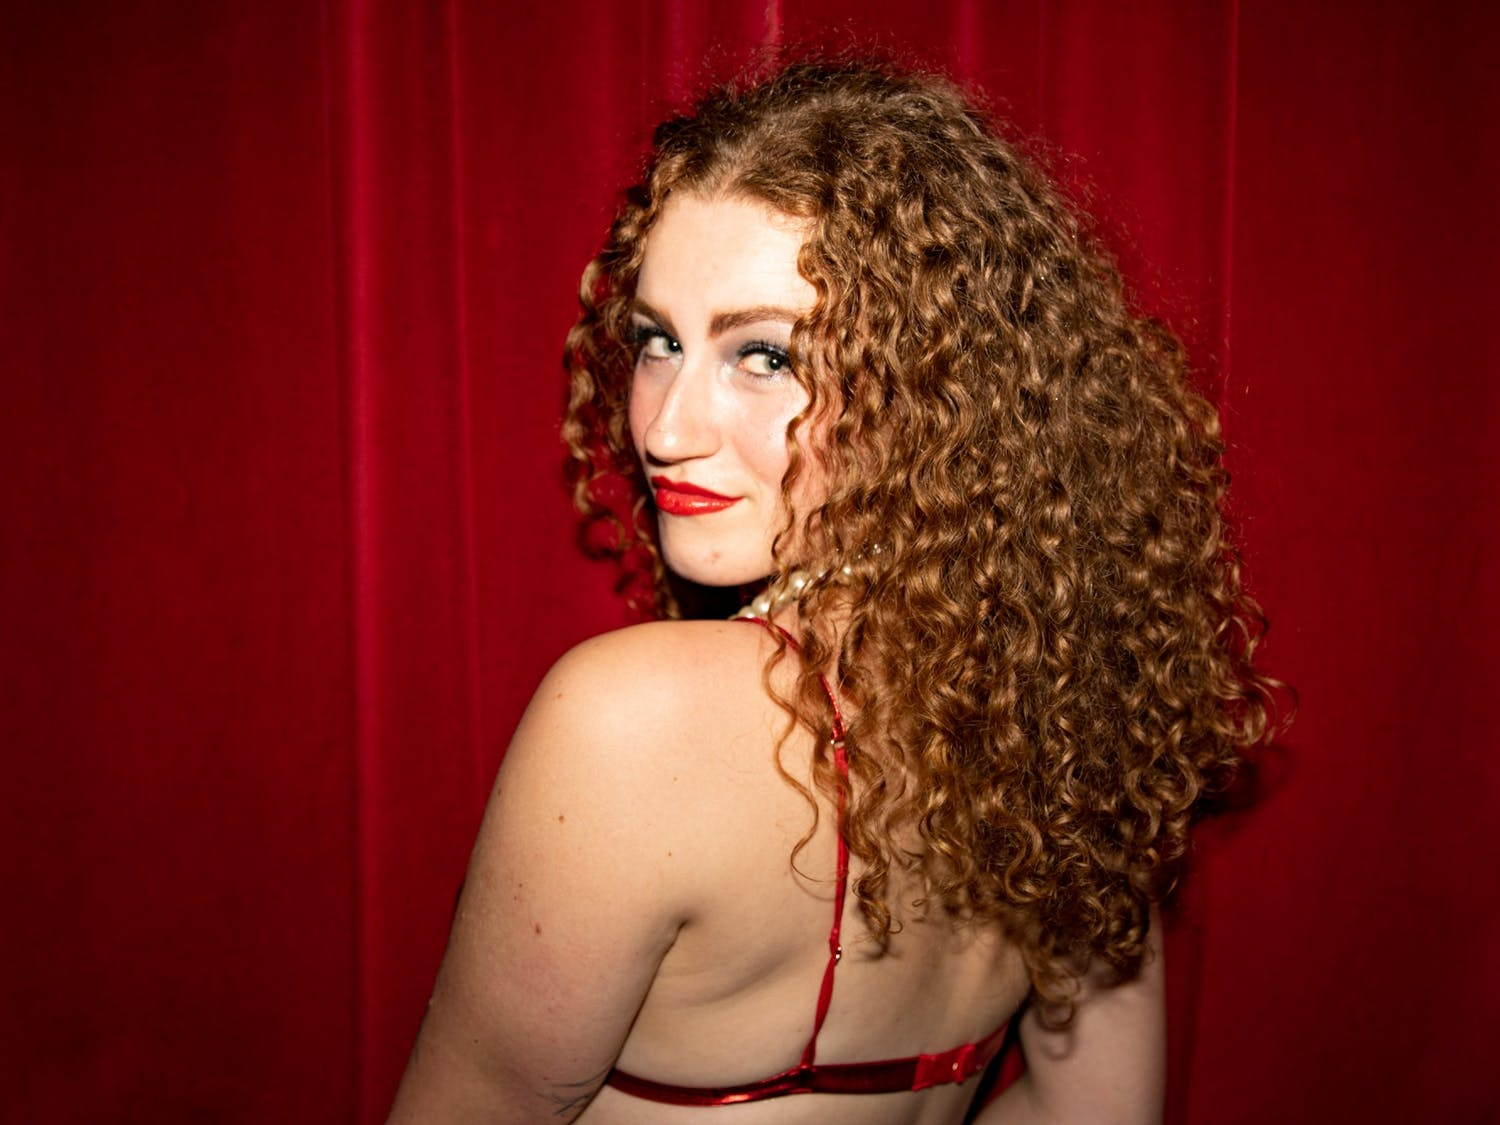 UNC senior Olivia Sullivan poses for a portrait before an Oct. 26 technical rehearsal of the Rocky Horror Picture Show at the Varsity Theatre. The production is an annual tradition of the UNC Pauper Players, and Sullivan is portraying the lead, Dr. Frank-N-Furter.